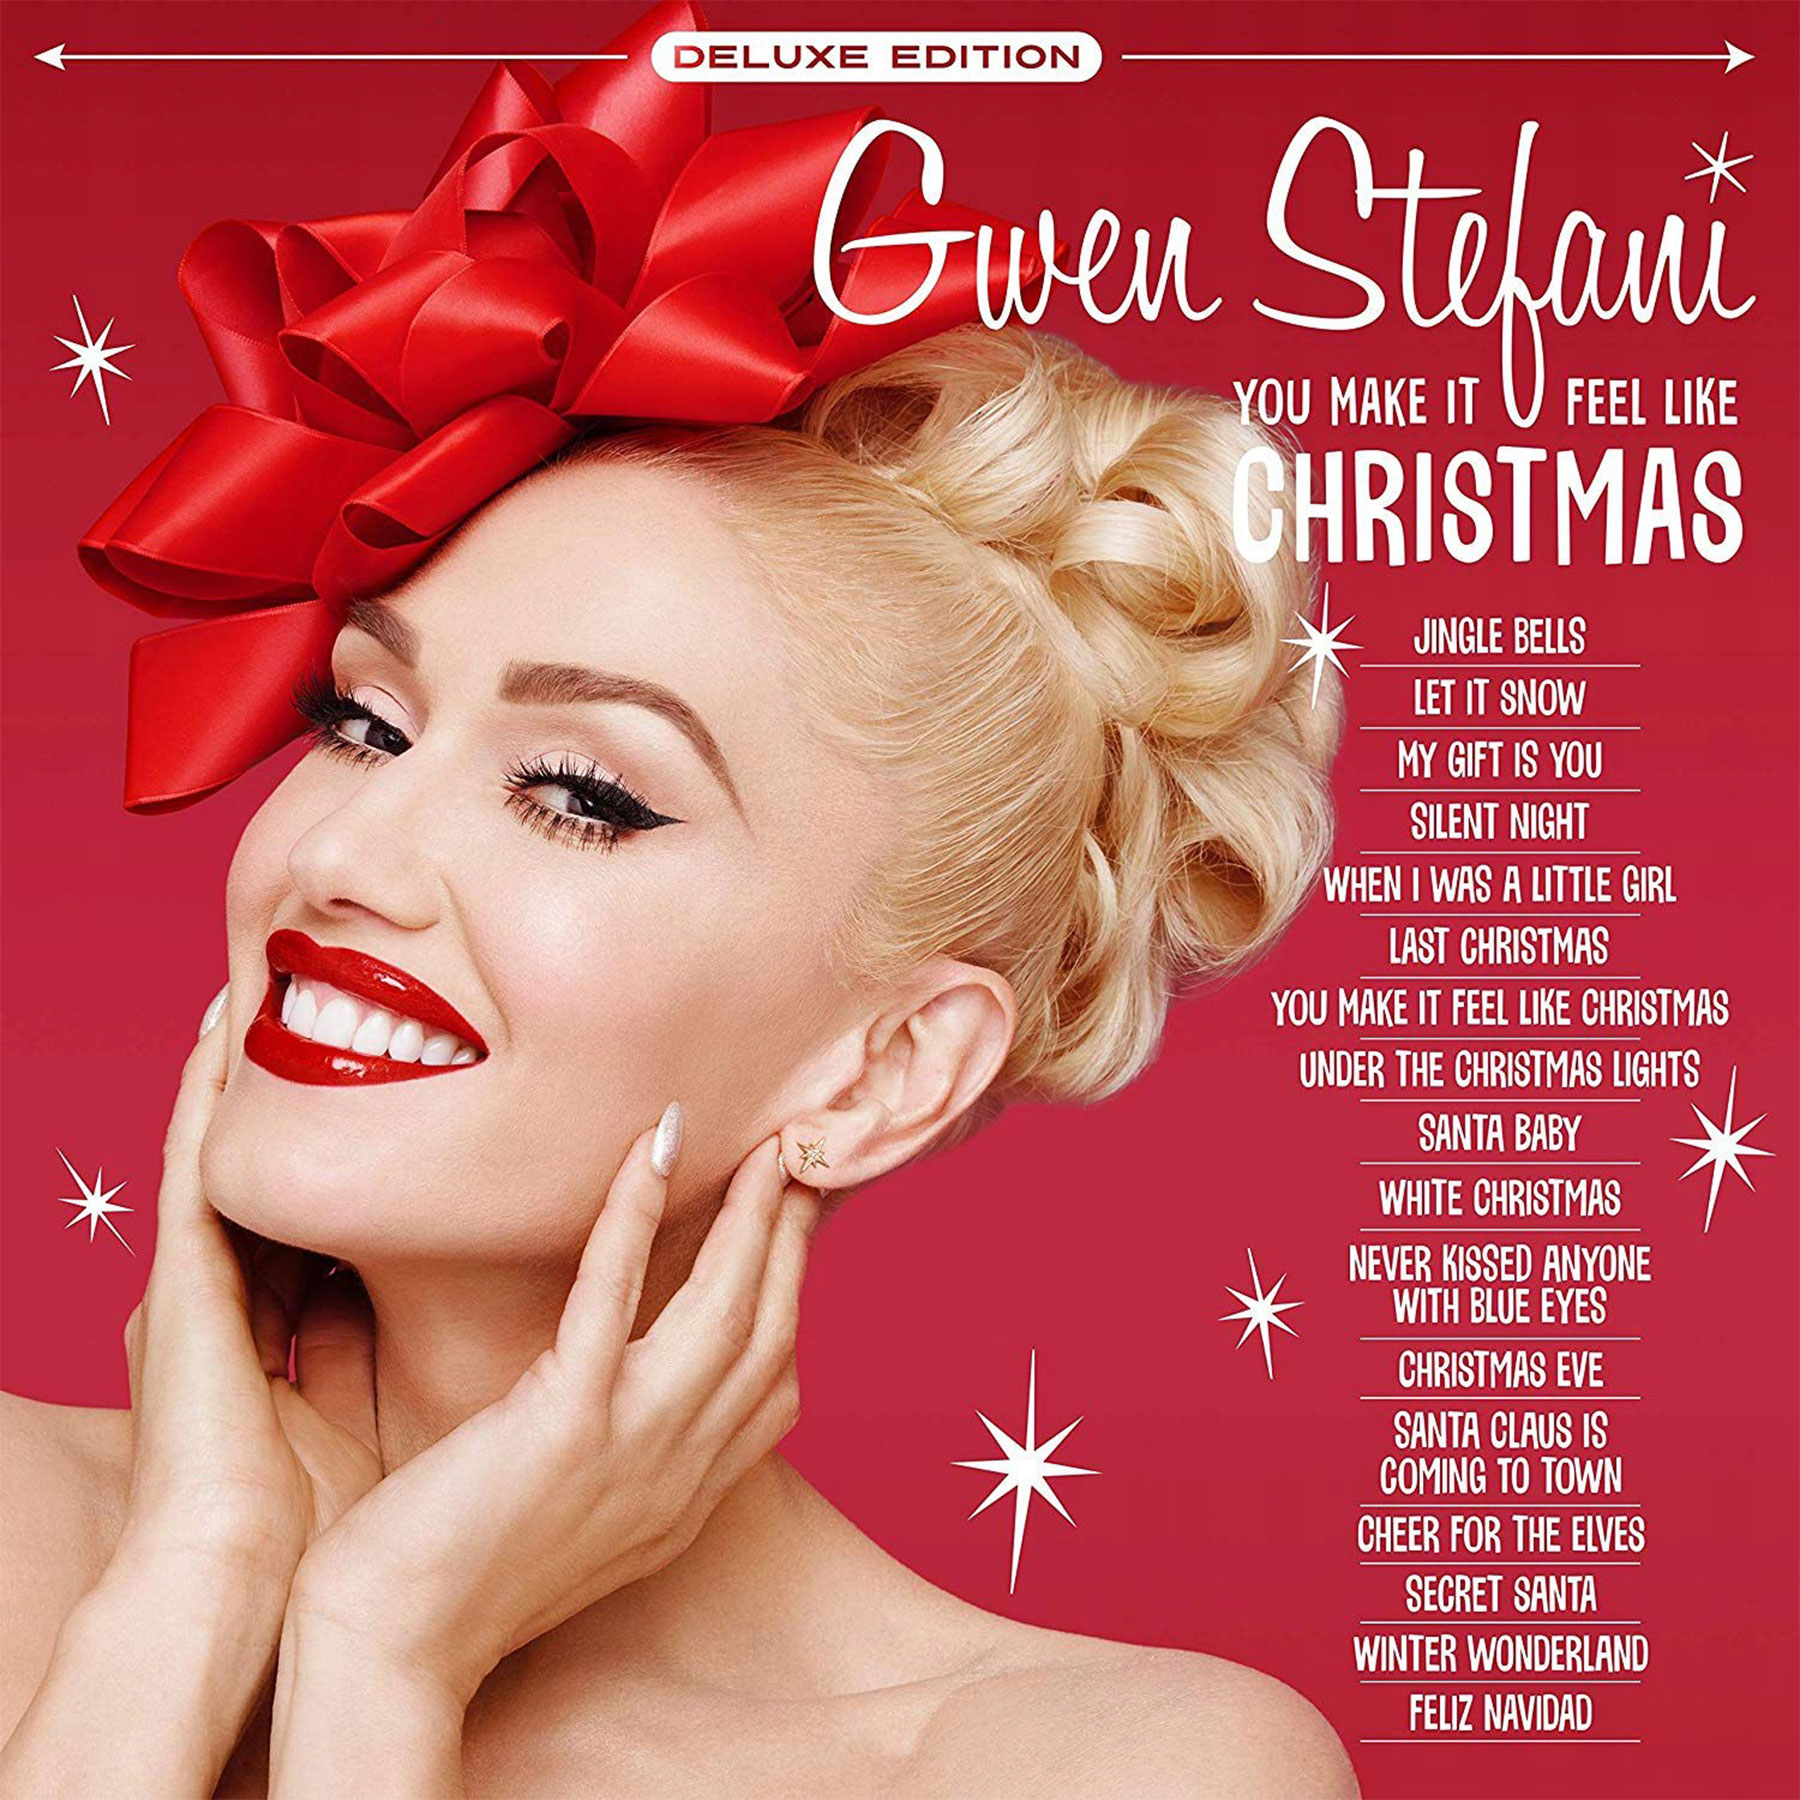 Gwen Stefani You Make It Feel Like Christmas (Deluxe Edition)CR: Interscope